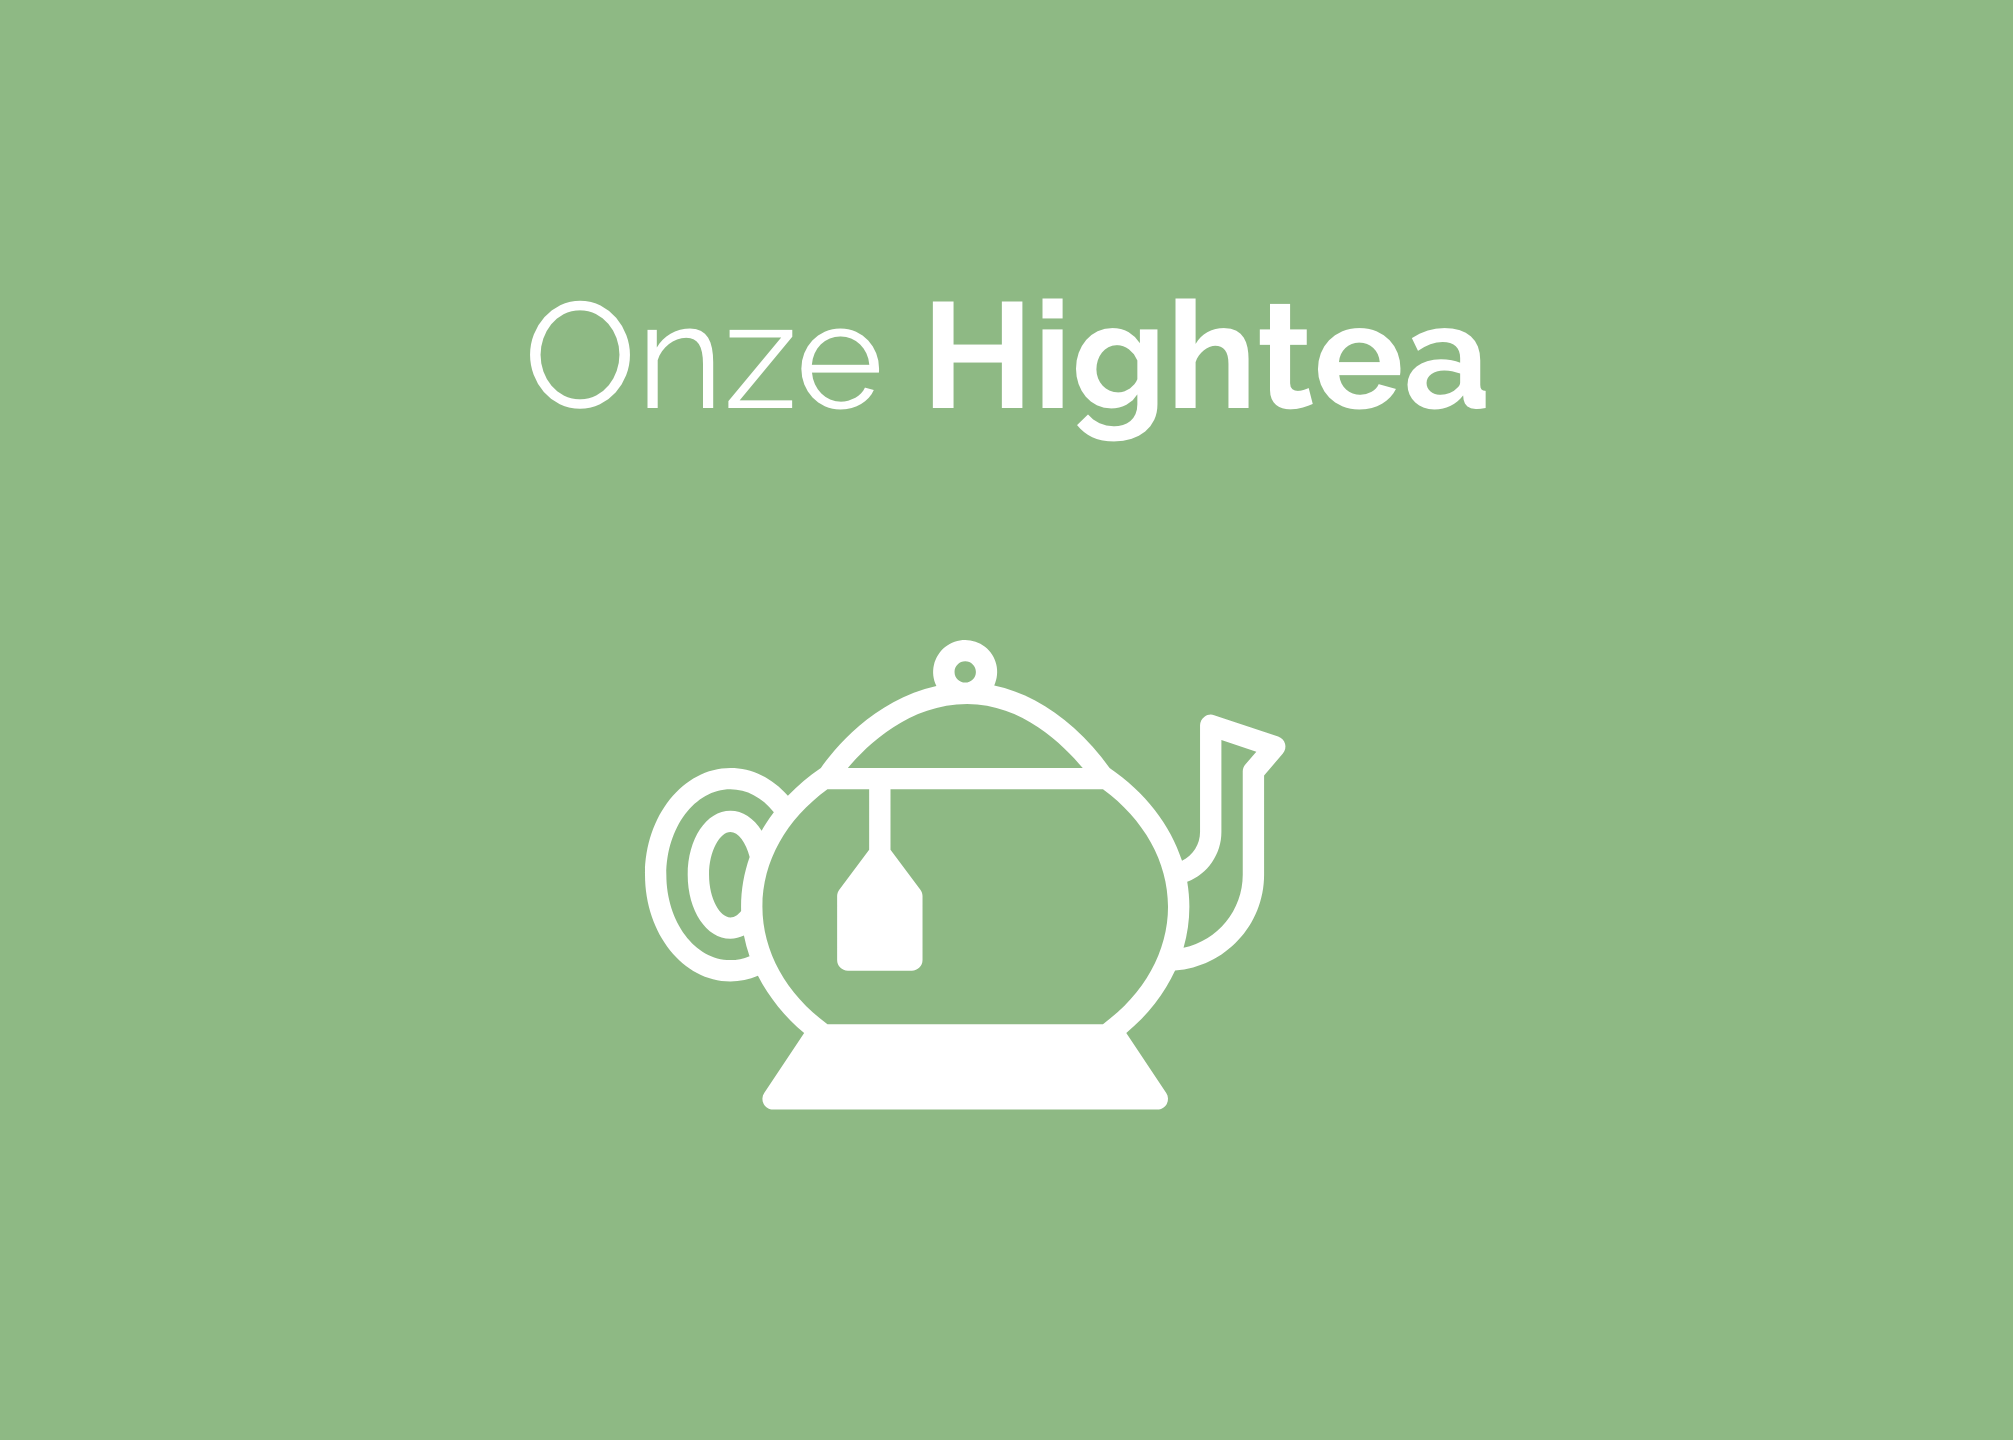 De Tuin high tea